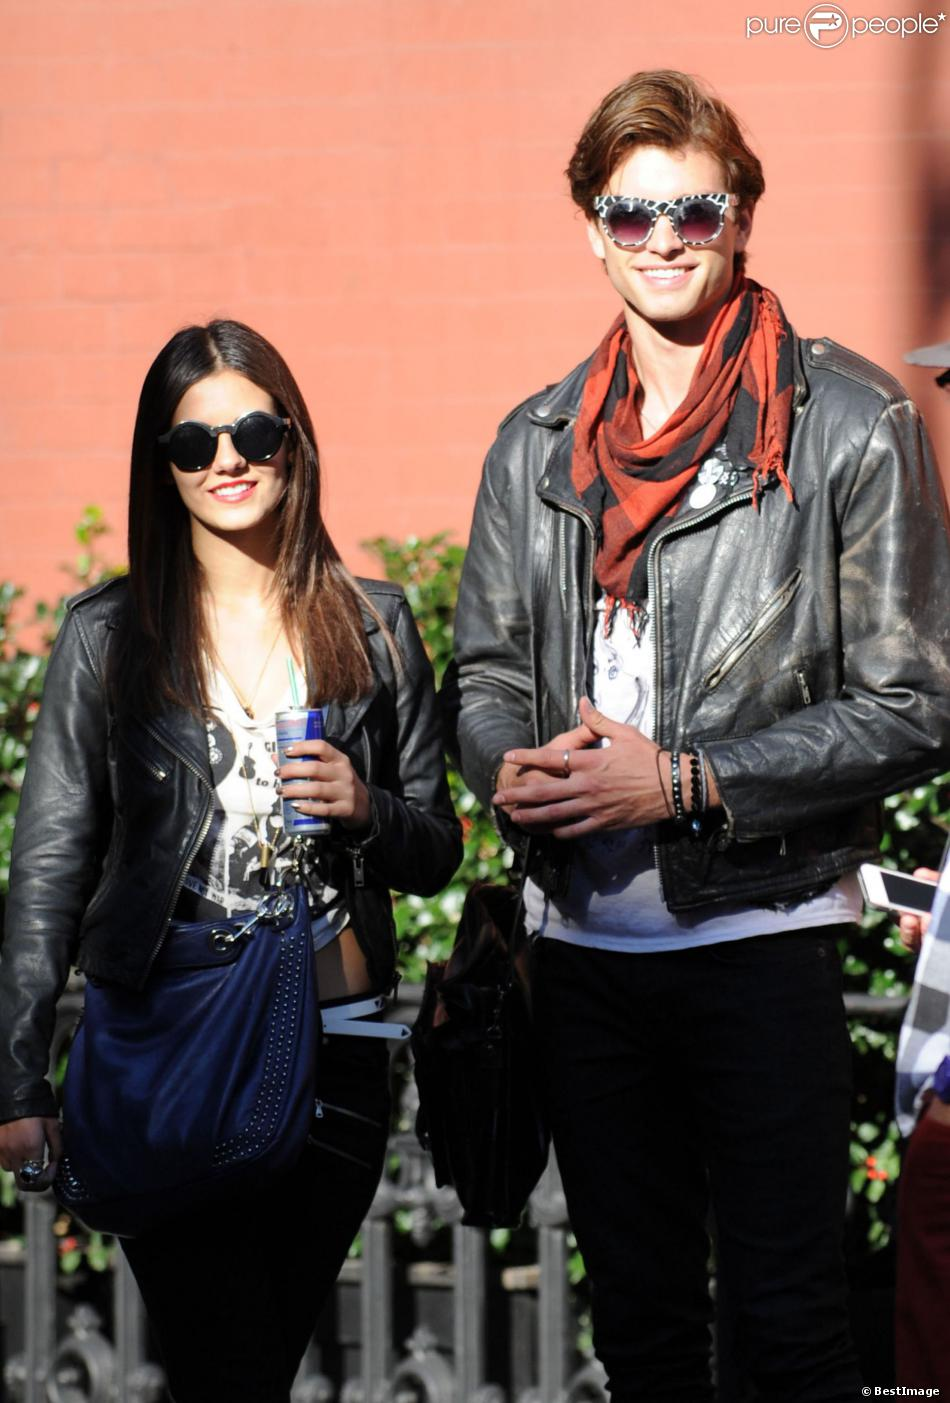 "victoria justice and pierson fode dating Victoria justice and pierson fode have called it quits after just over two years of dating ""they ve been on a break for a couple of months,"" a source close to the couple confirmed to justjaredcom ""they are hoping to work things out and still care for each other a lot"" the eye candy star, 22, met fode, 25."